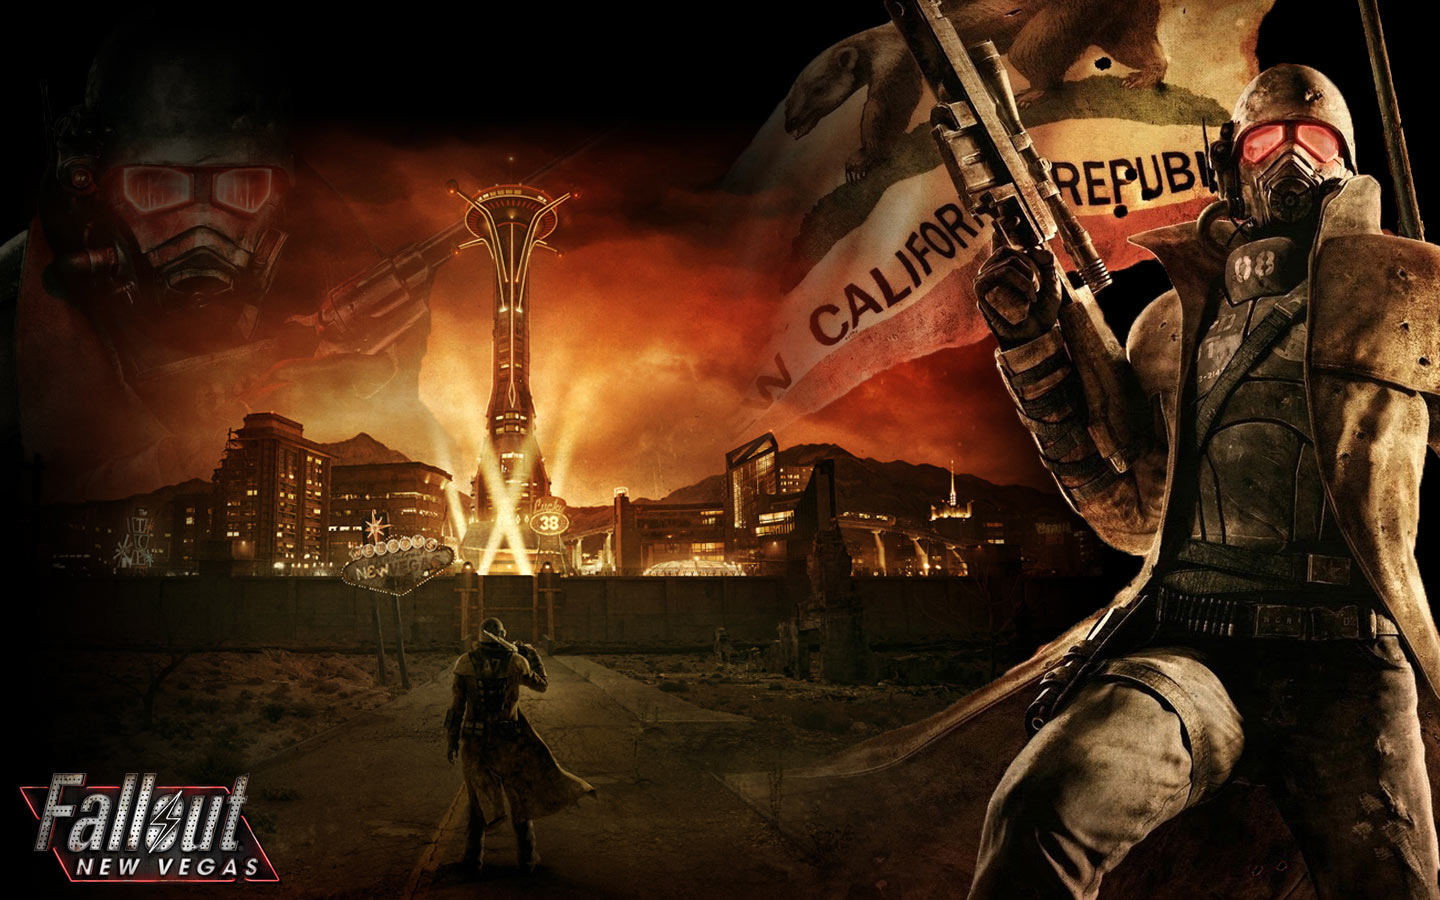 Free Download Fallout New Vegas Wallpaper 1440x900 For Your